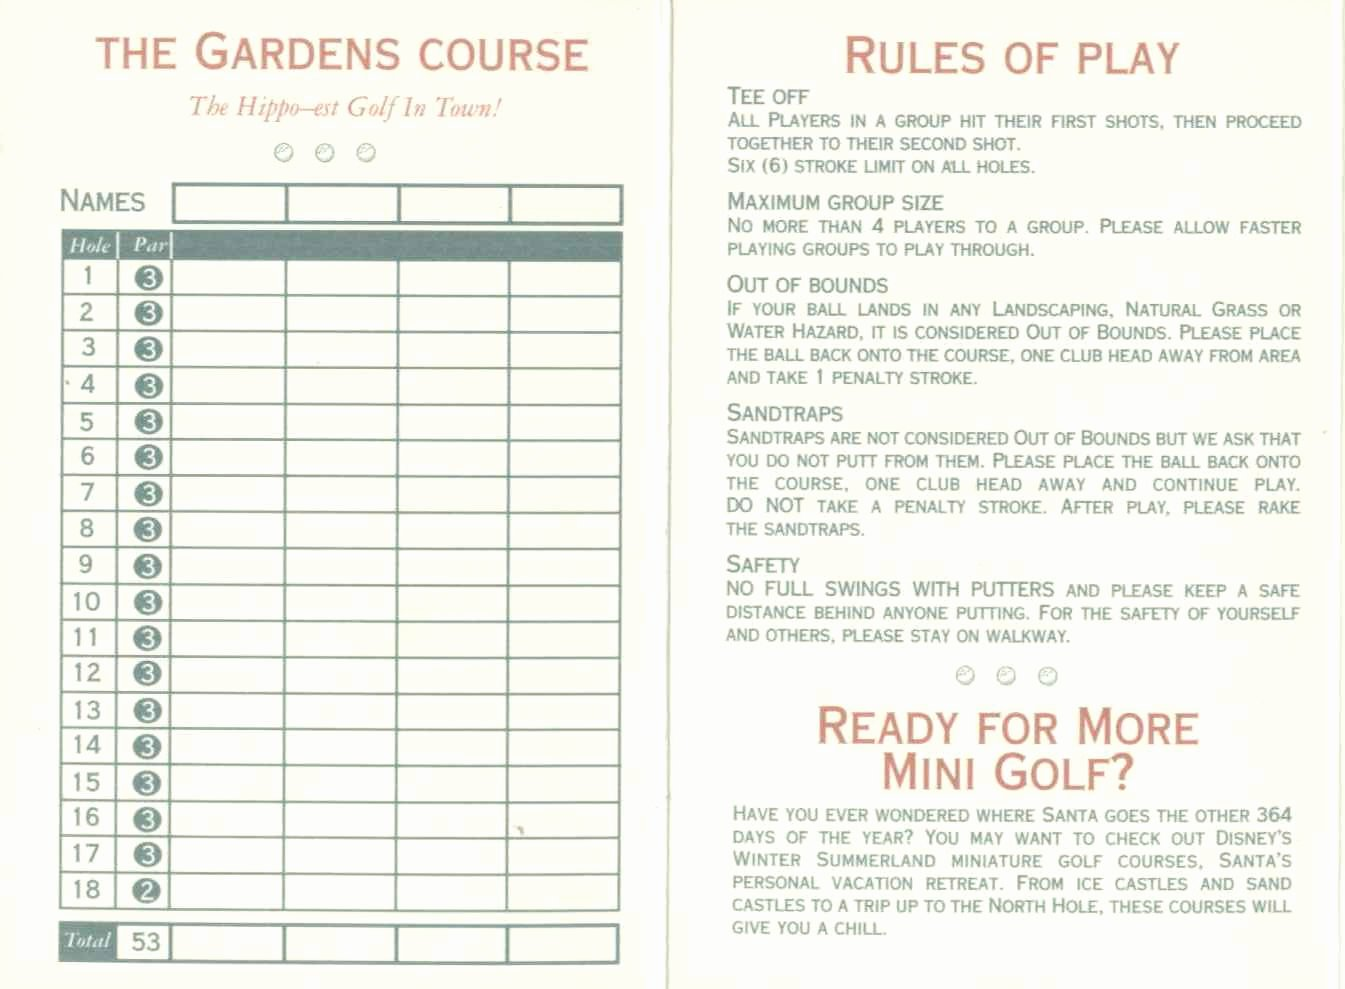 Mini Golf Score Card Beautiful Score Cards Of Crazy Golf Miniature Golf and Adventure